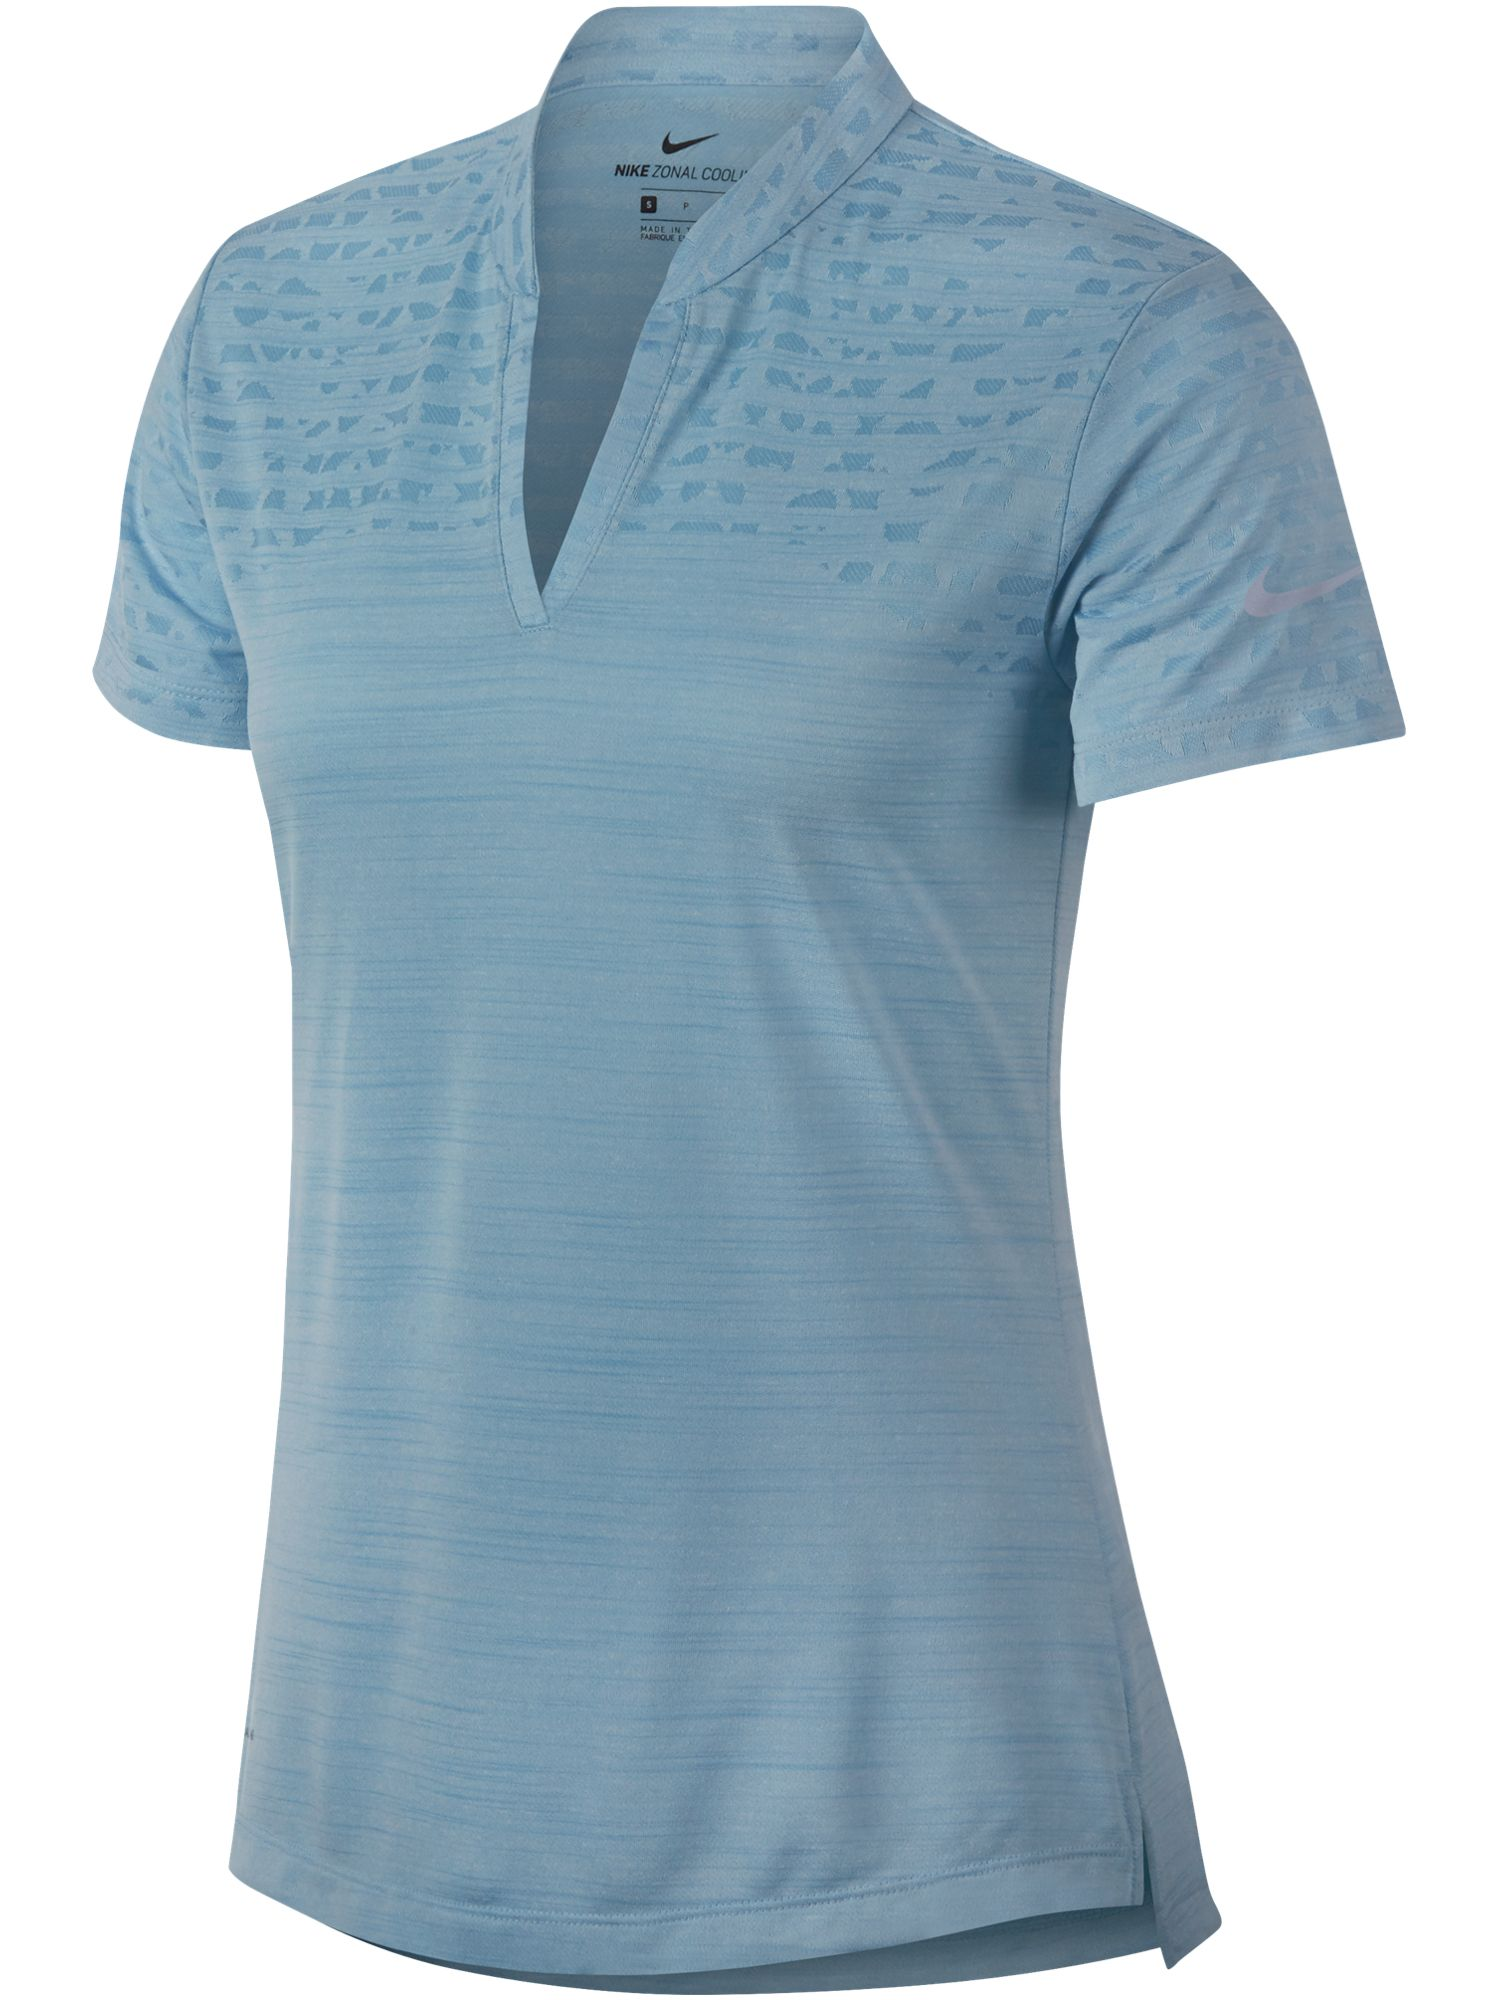 Nike Golf Zonal Cooling Polo, Ocean